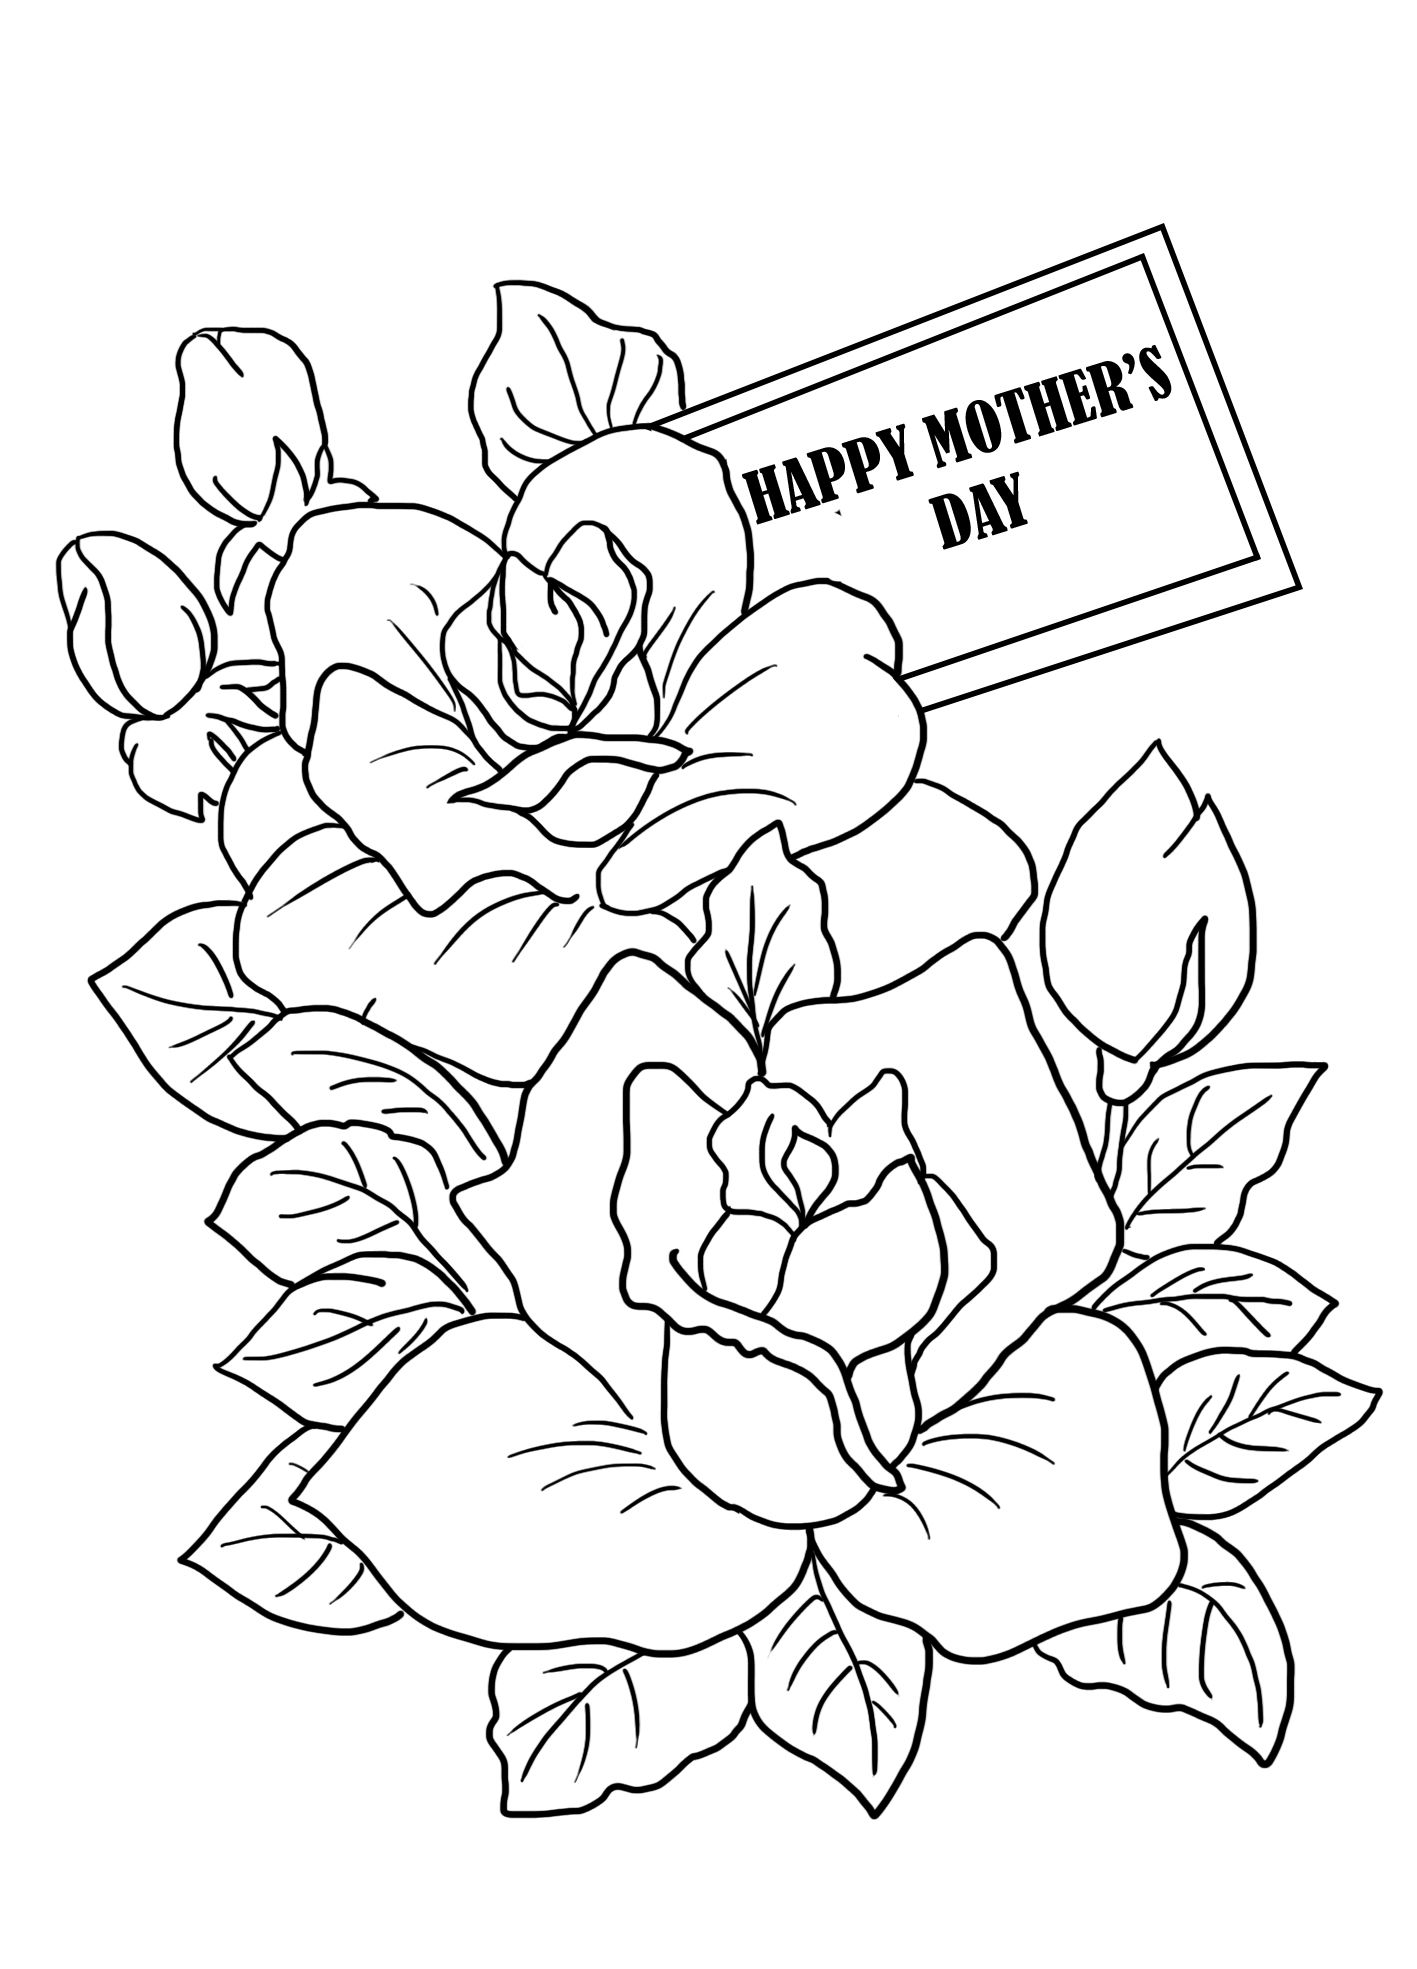 Flower Coloring For Mother S Day